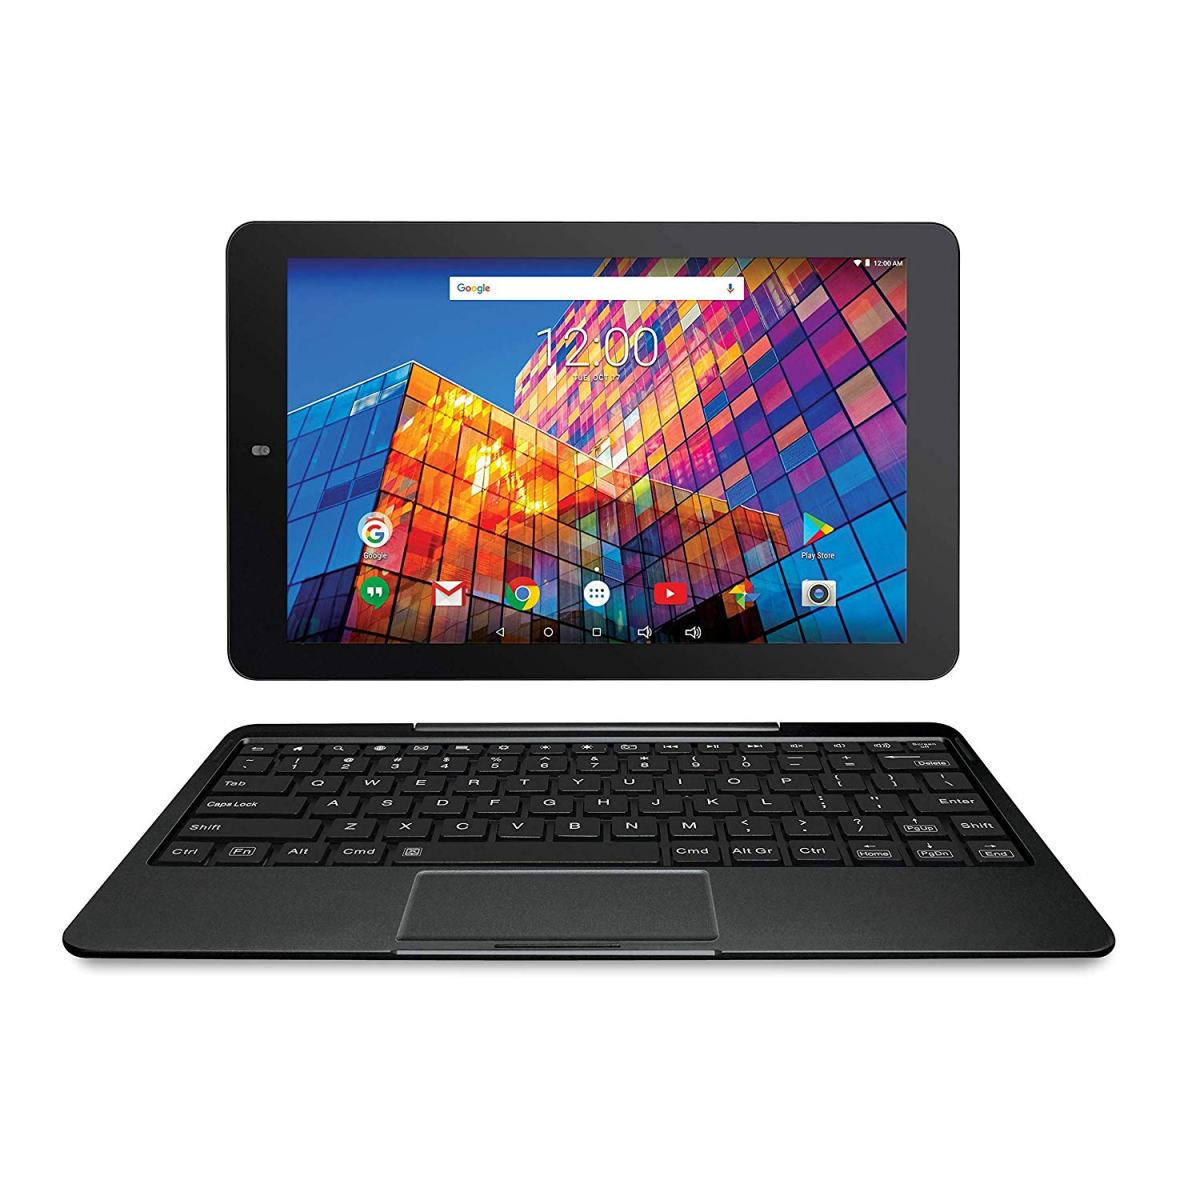 RCA 10-inch Android Tablet with Keyboard